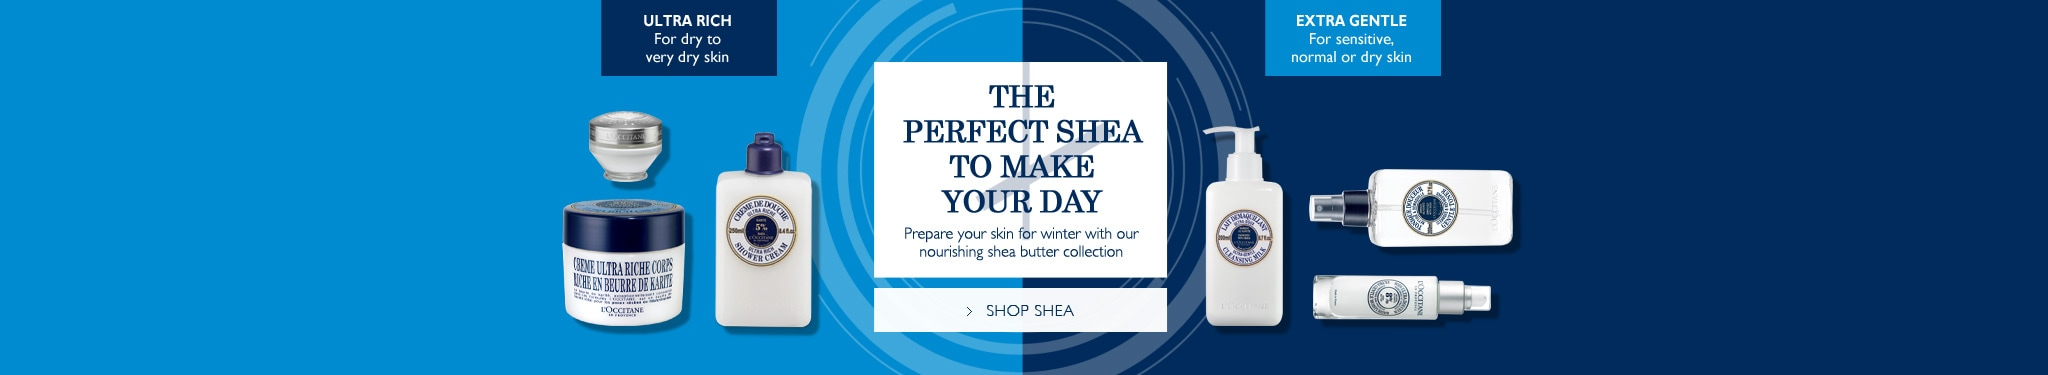 The Perfect Shea to Make Your Day